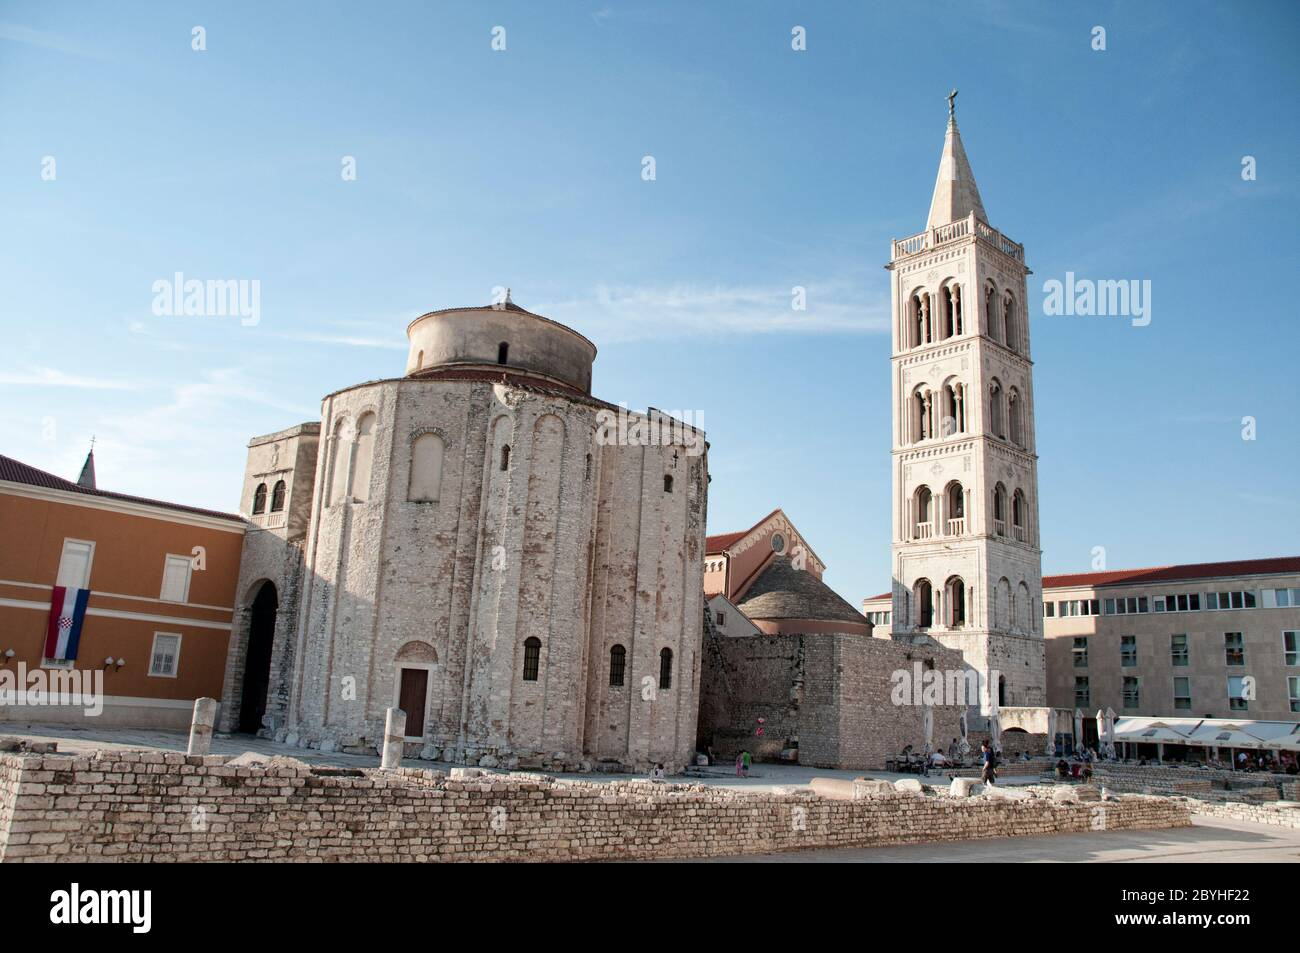 The Church and belfry of St. Donatus is a church located in Zadar, Croatia Stock Photo